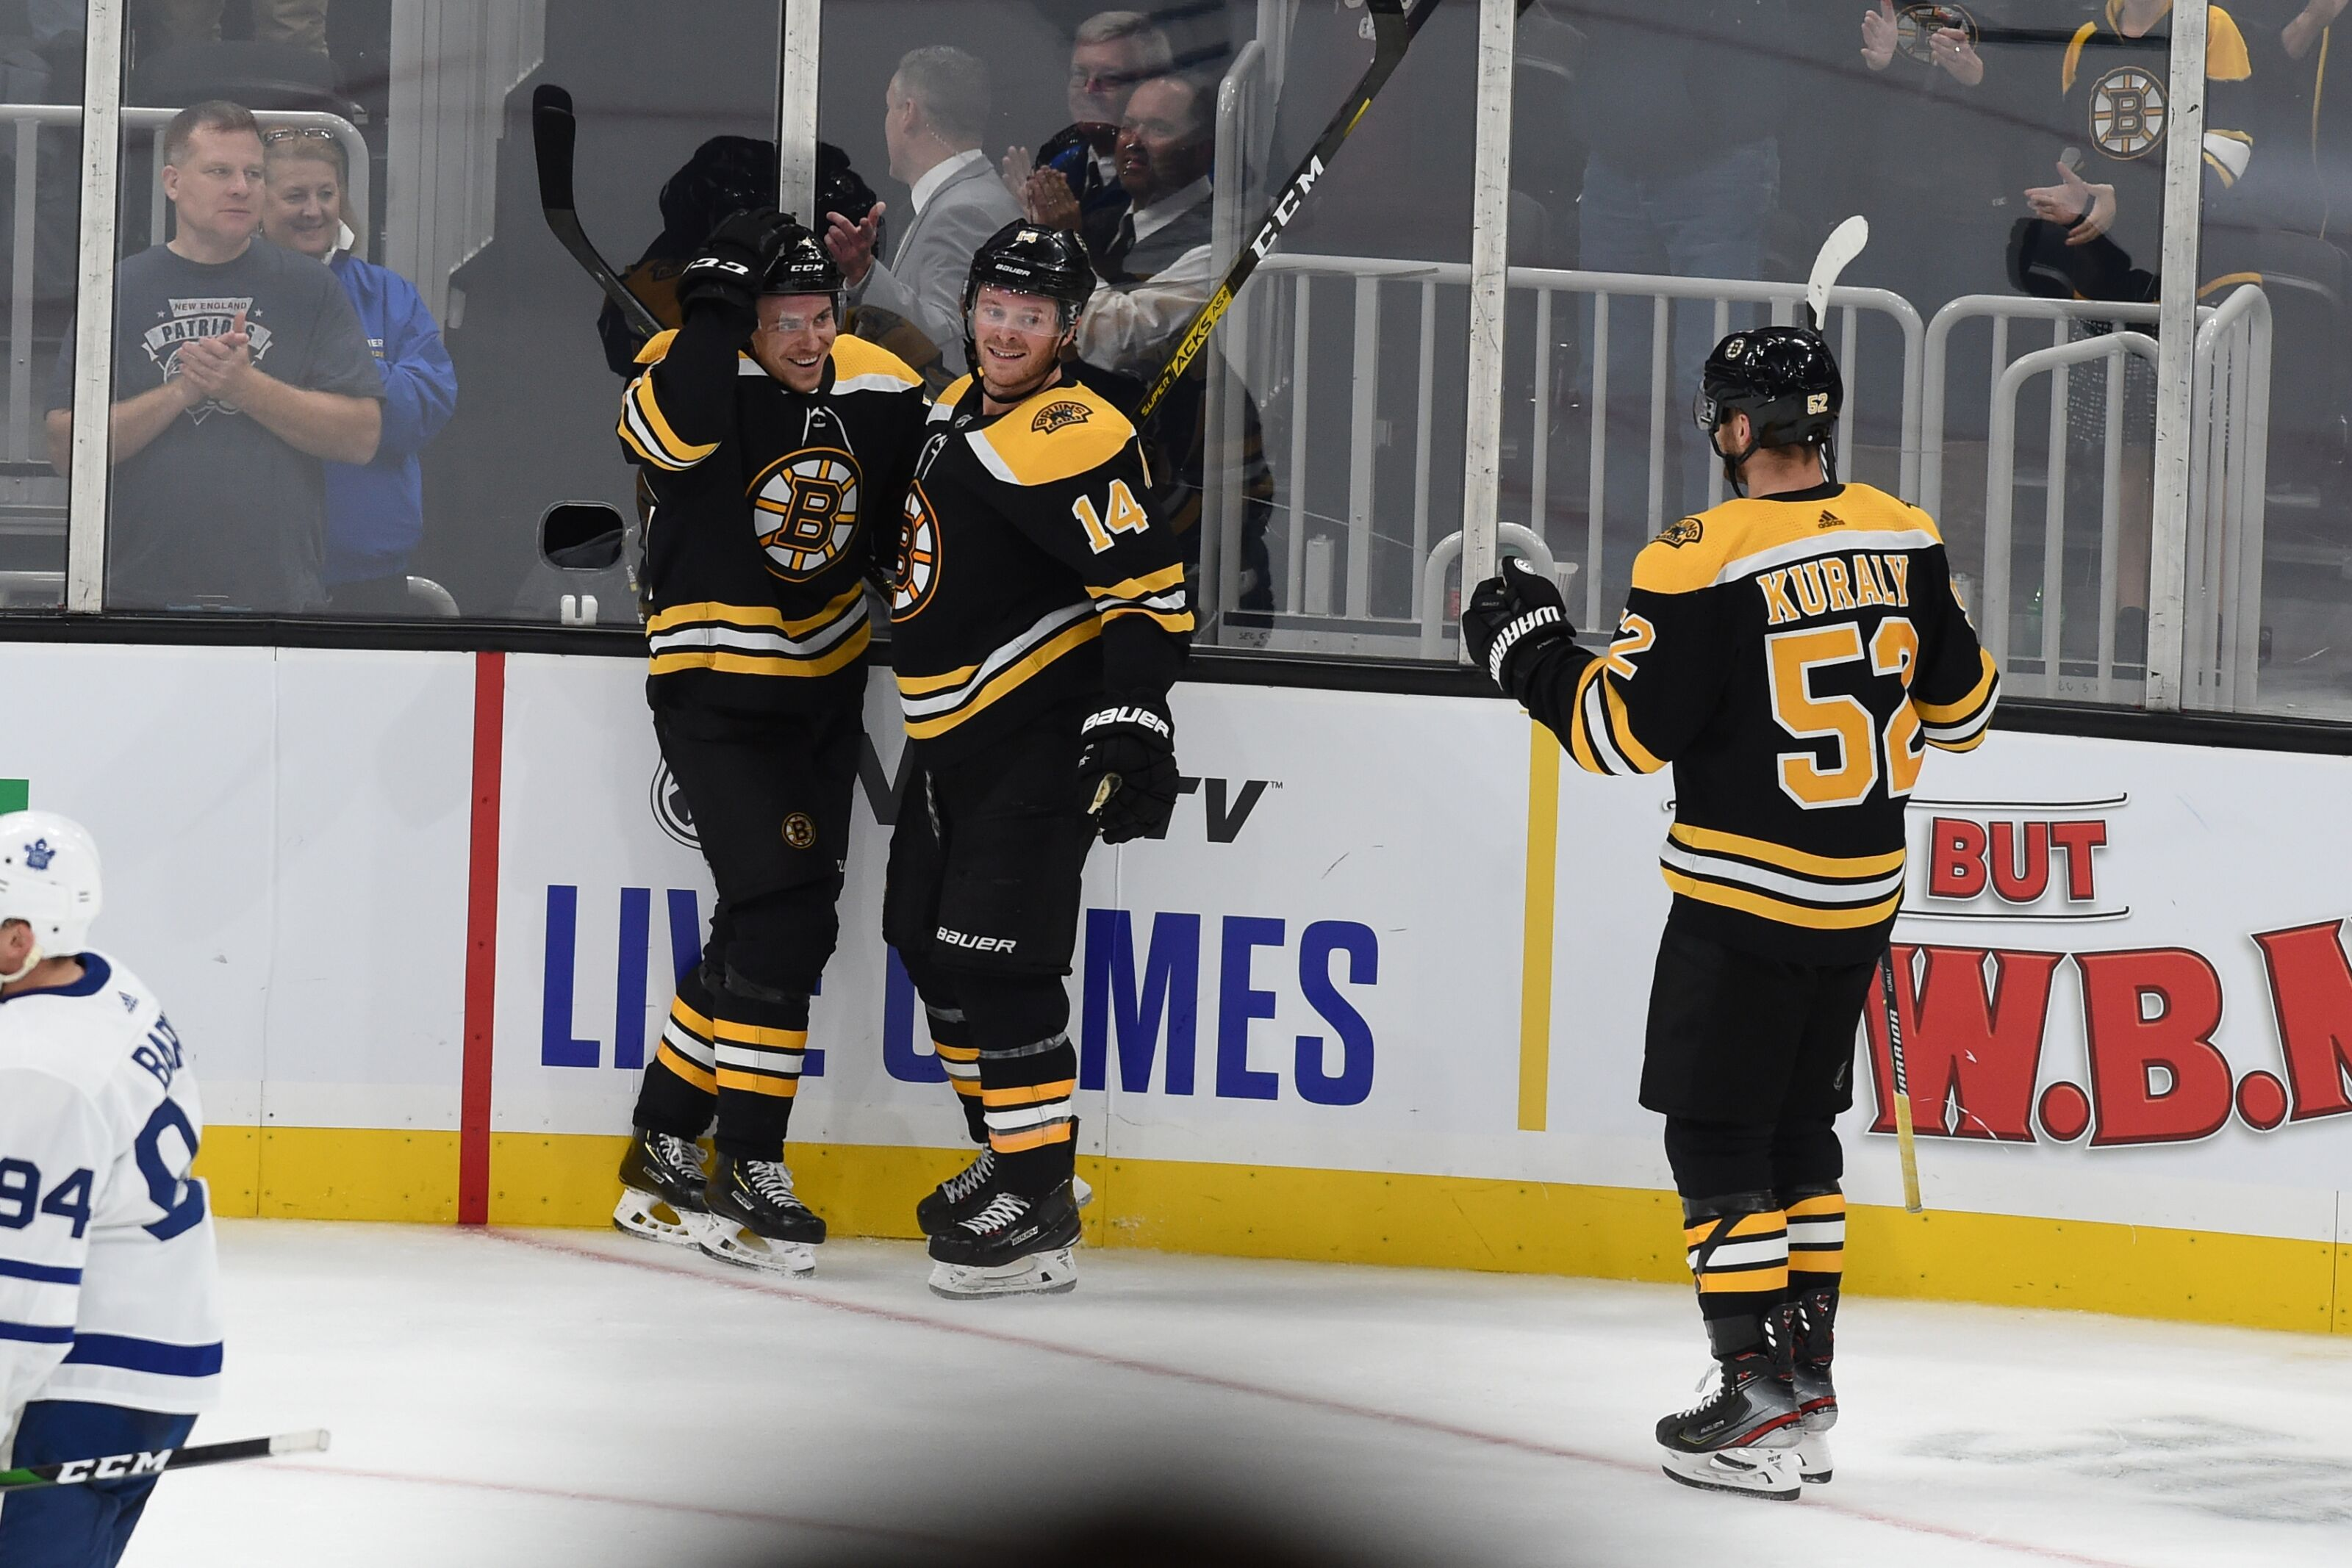 Boston Bruins: Injury list leads to a surprising second line in win over Leafs